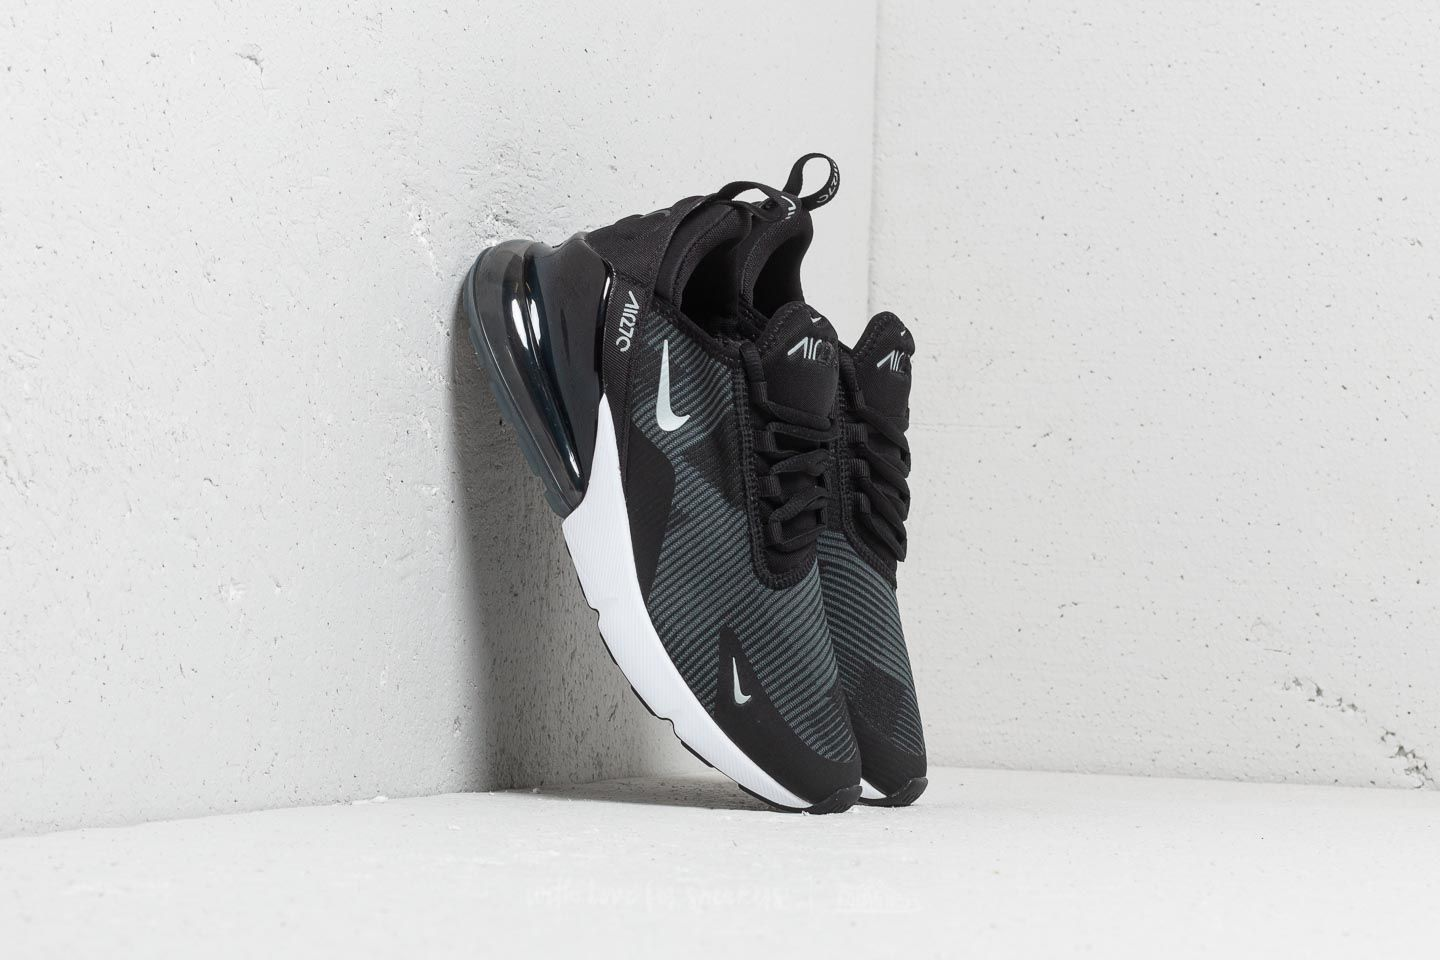 new concept 72663 541b7 Nike Air Max 270 Jacquard (GS) Black/ Wolf Grey-Dark Grey ...